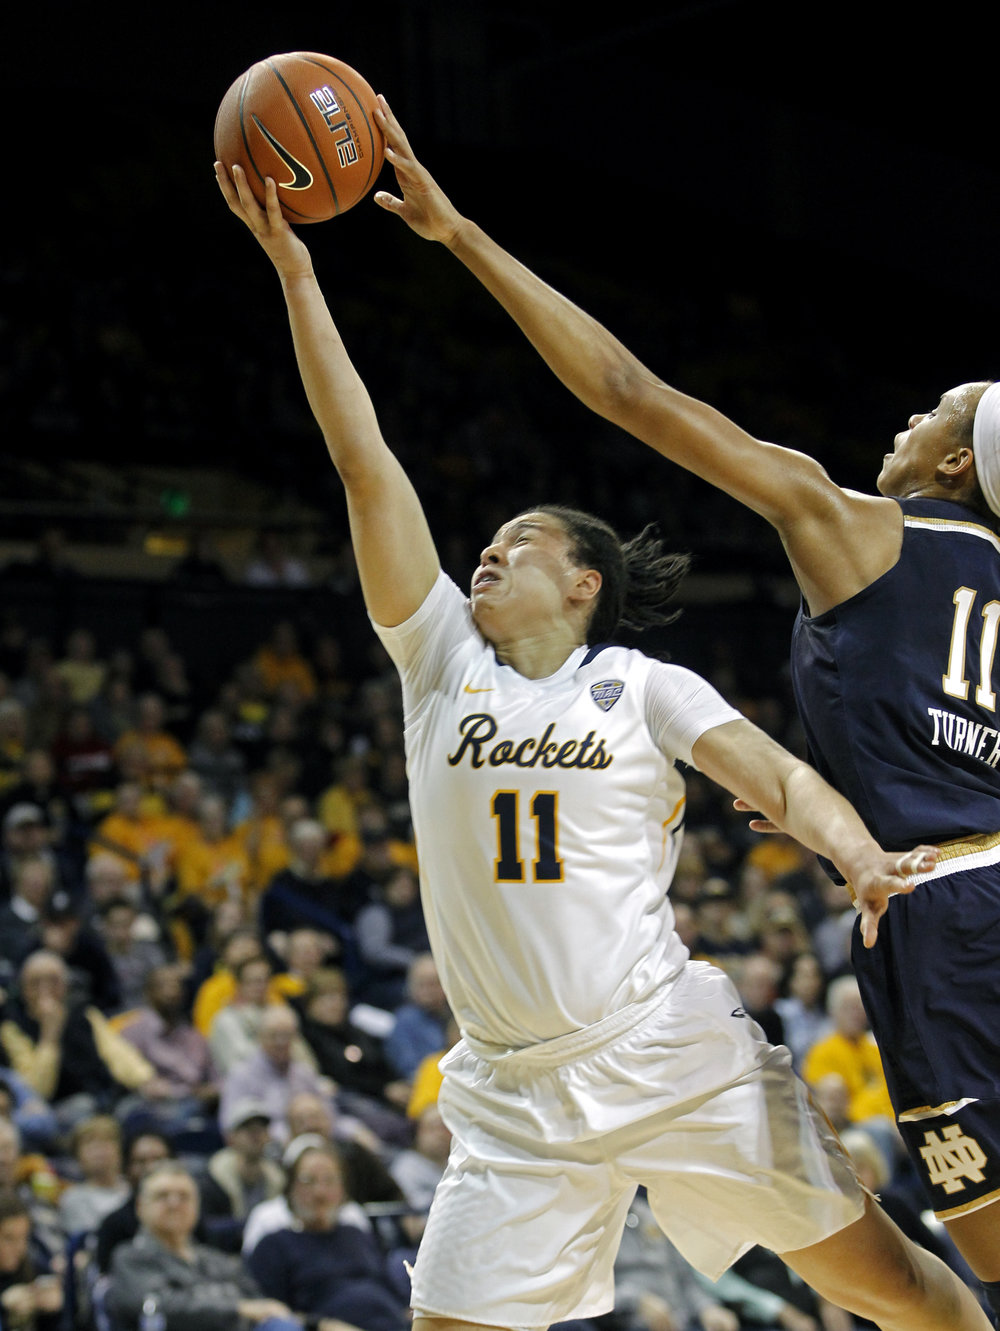 University of Toledo guard Jay-Ann Bravo-Harriott's (11) layup is blocked by Notre Dame forward Brianna Turner (11) during the women's basketball game at Savage Arena on the University of Toledo's campus on Sunday, Dec. 18, 2016.